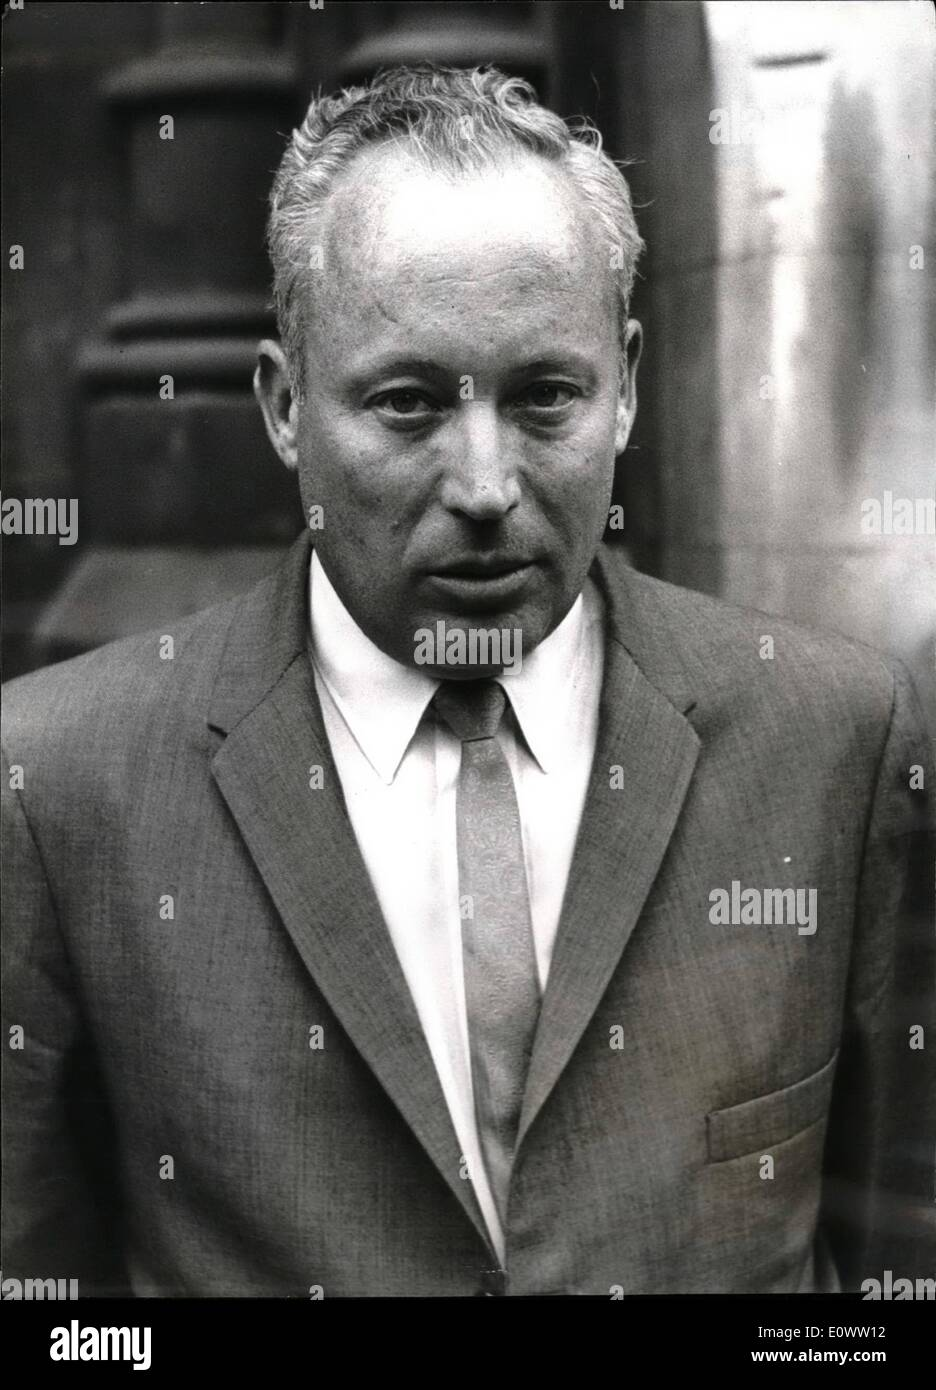 Apr. 16, 1964 - 16-4-64 Author of Exodus sued for libel. Leon Uris, author of the best-selling book Exodus flew in to London from America to give evidence in the High Court, where he is being sued for libel by Dr. Wladyslaw Dering, a former Auschwitz prisoner and surgeon, now practicing in London. Dr. Dering claims the statement in the book that he performed 17,000 experiments in surgery without anesthetics, make him appear a human monster on a par with the German fiends, whereas he was doing all in his power to relieve suffering among the prisoners. Photo Shows: Author Mr - Stock Image